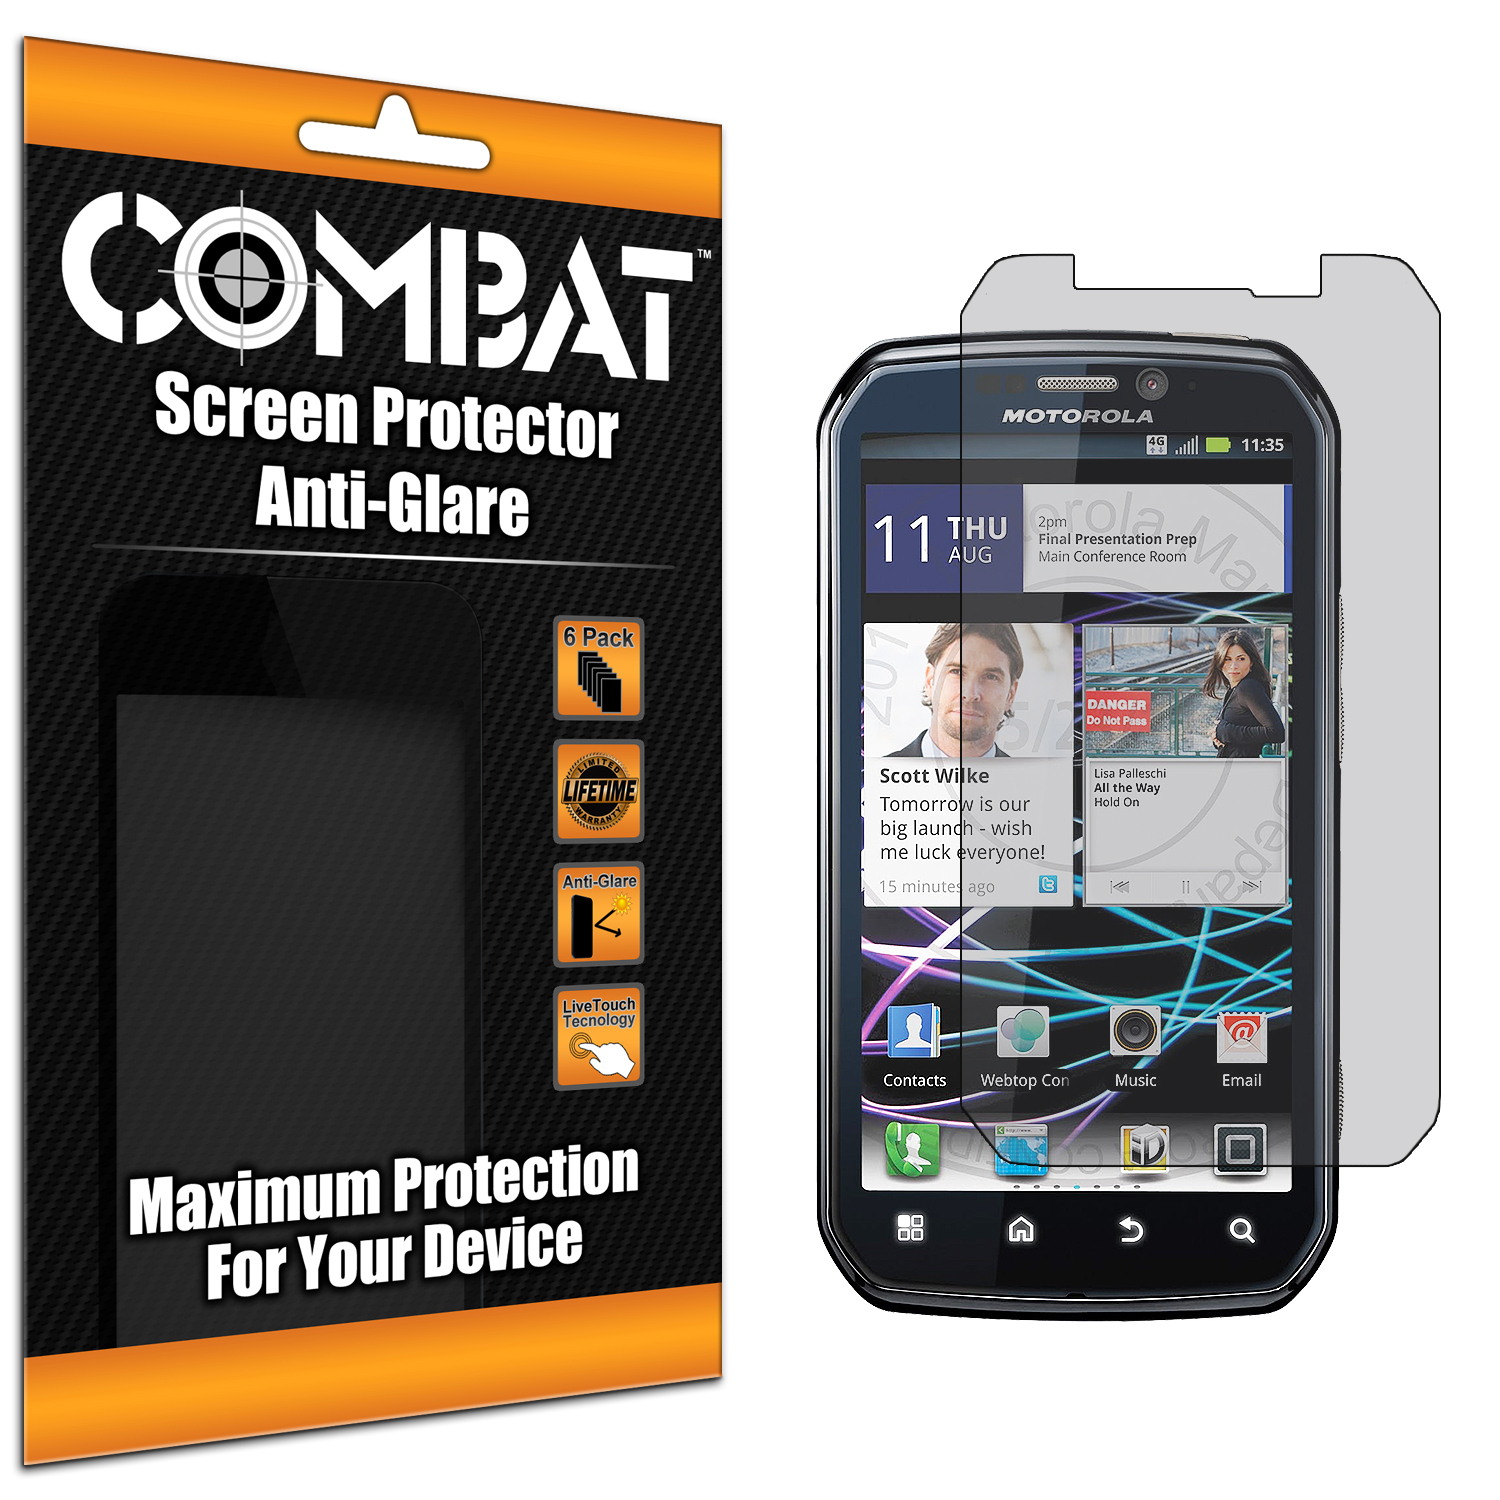 Motorola Photon 4G MB855 Combat 6 Pack Anti-Glare Matte Screen Protector